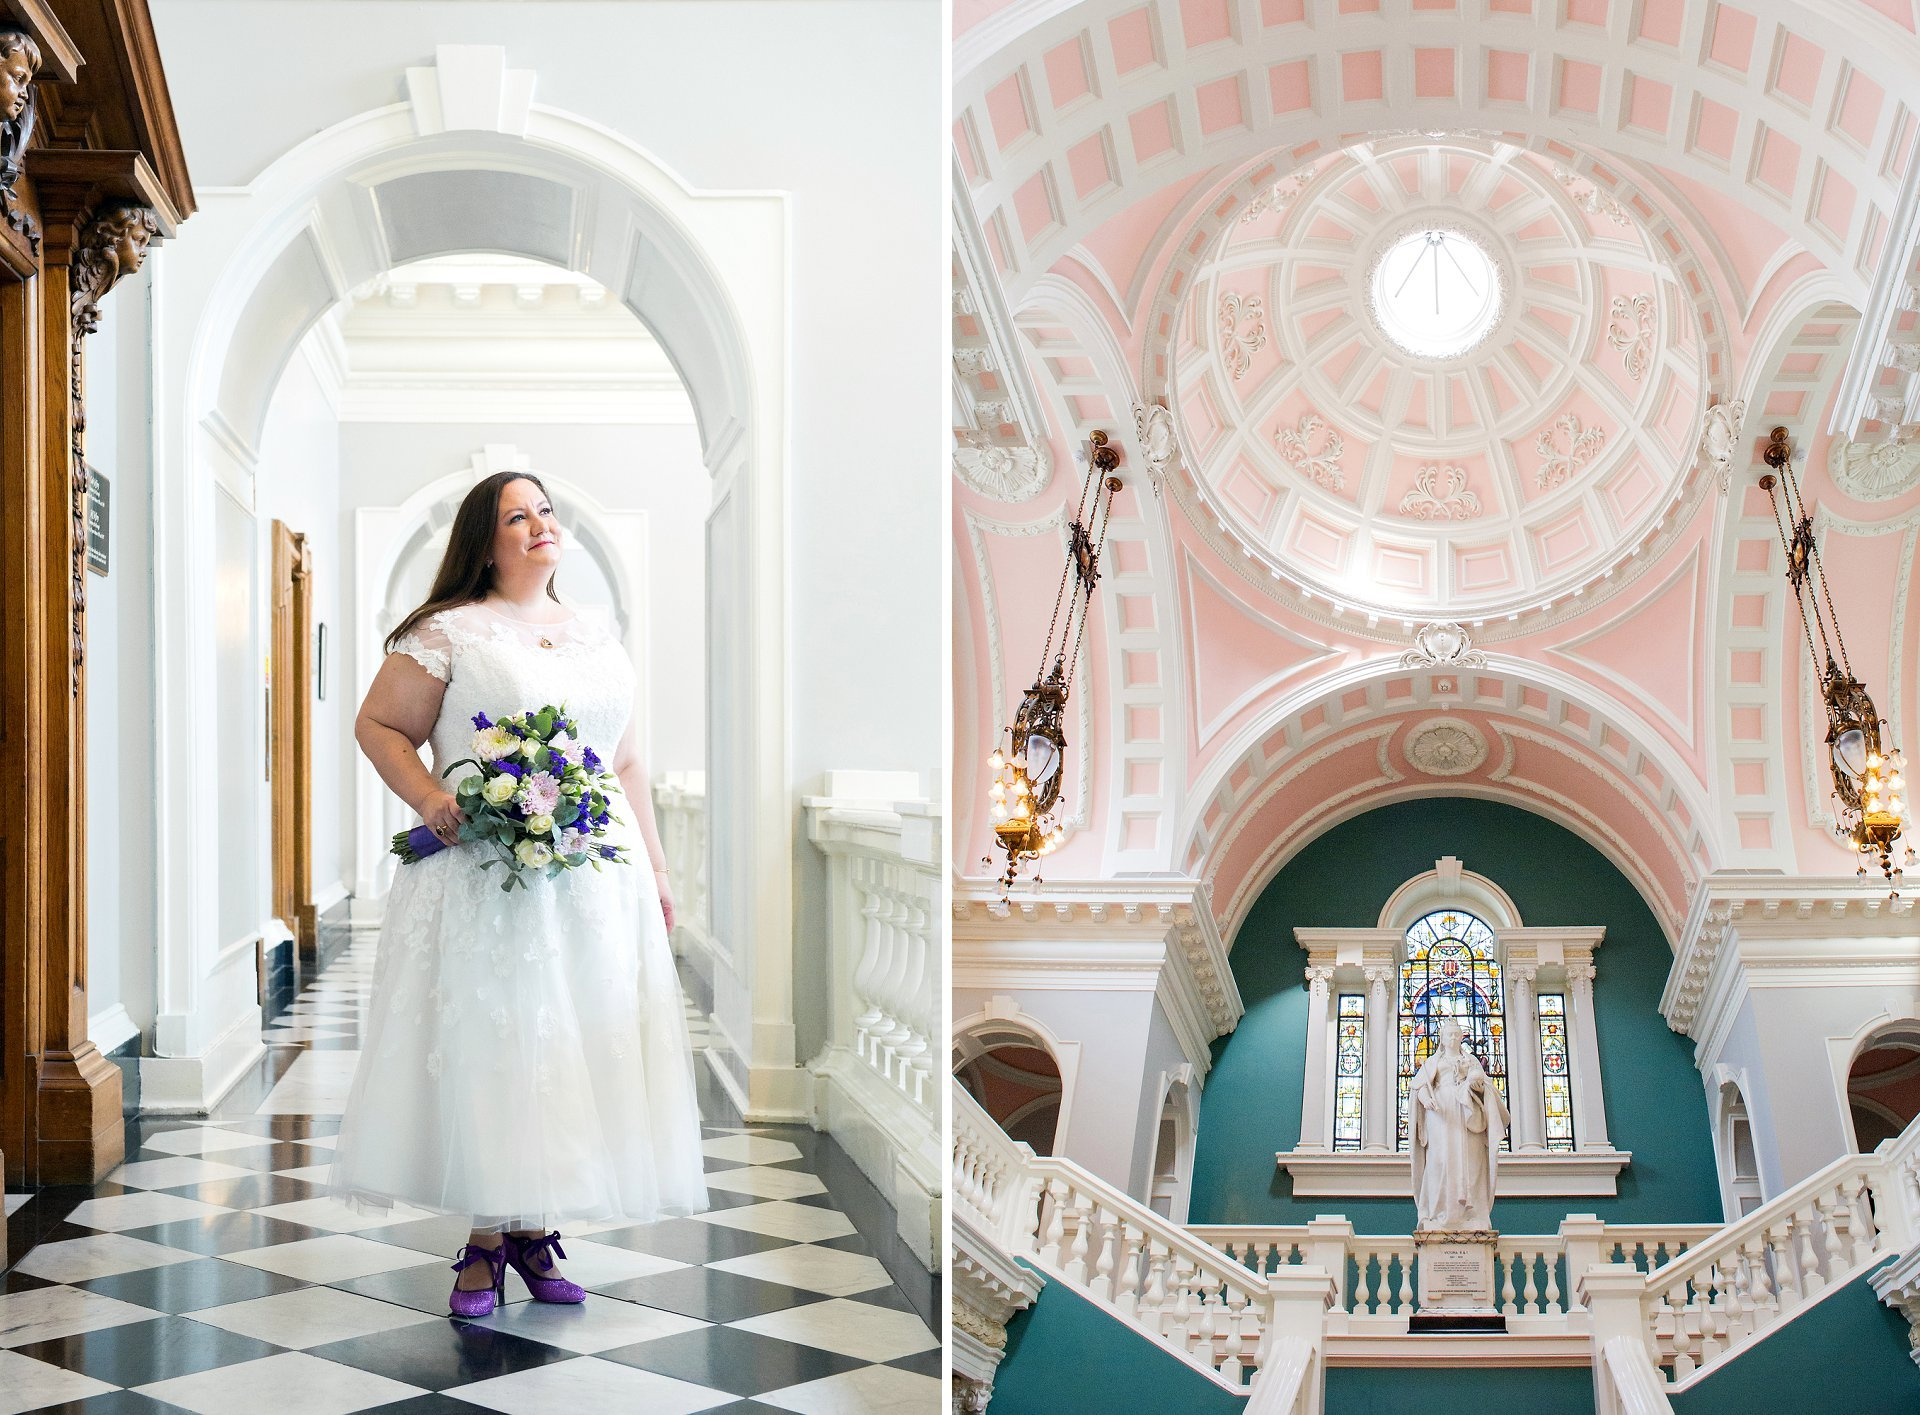 A bride at Greenwich Registry Office wearing a 50s inspired calf length lace dress and purple sparkly shoes tied with ribbon. The pale pink painted domed ceiling inside Victoria Hall at Woolwich Town Hall